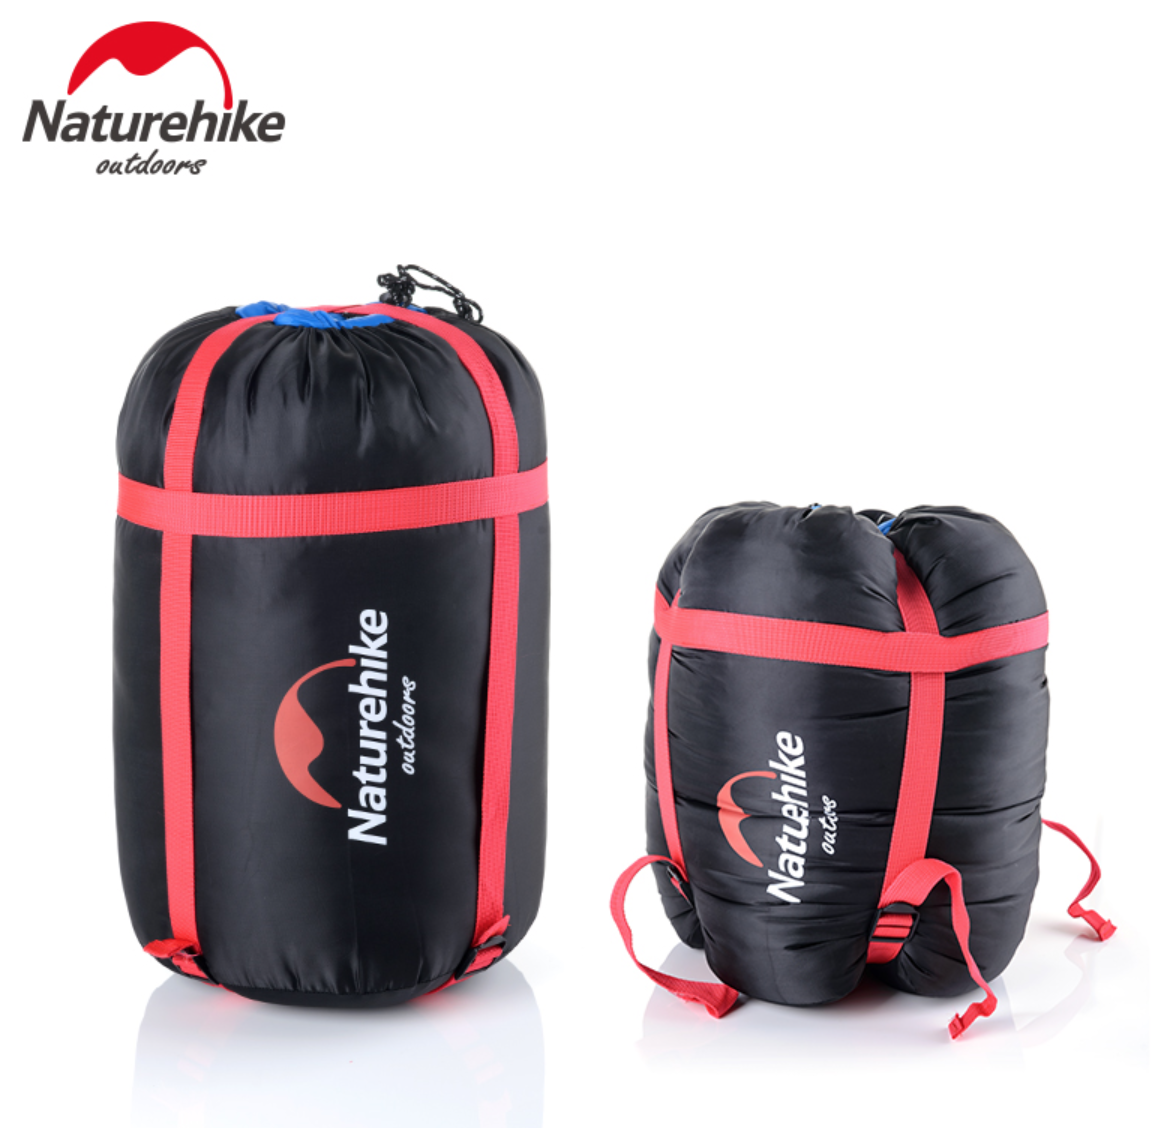 Naturehike Camping Sleeping Bag Pack Compression Storage Carry